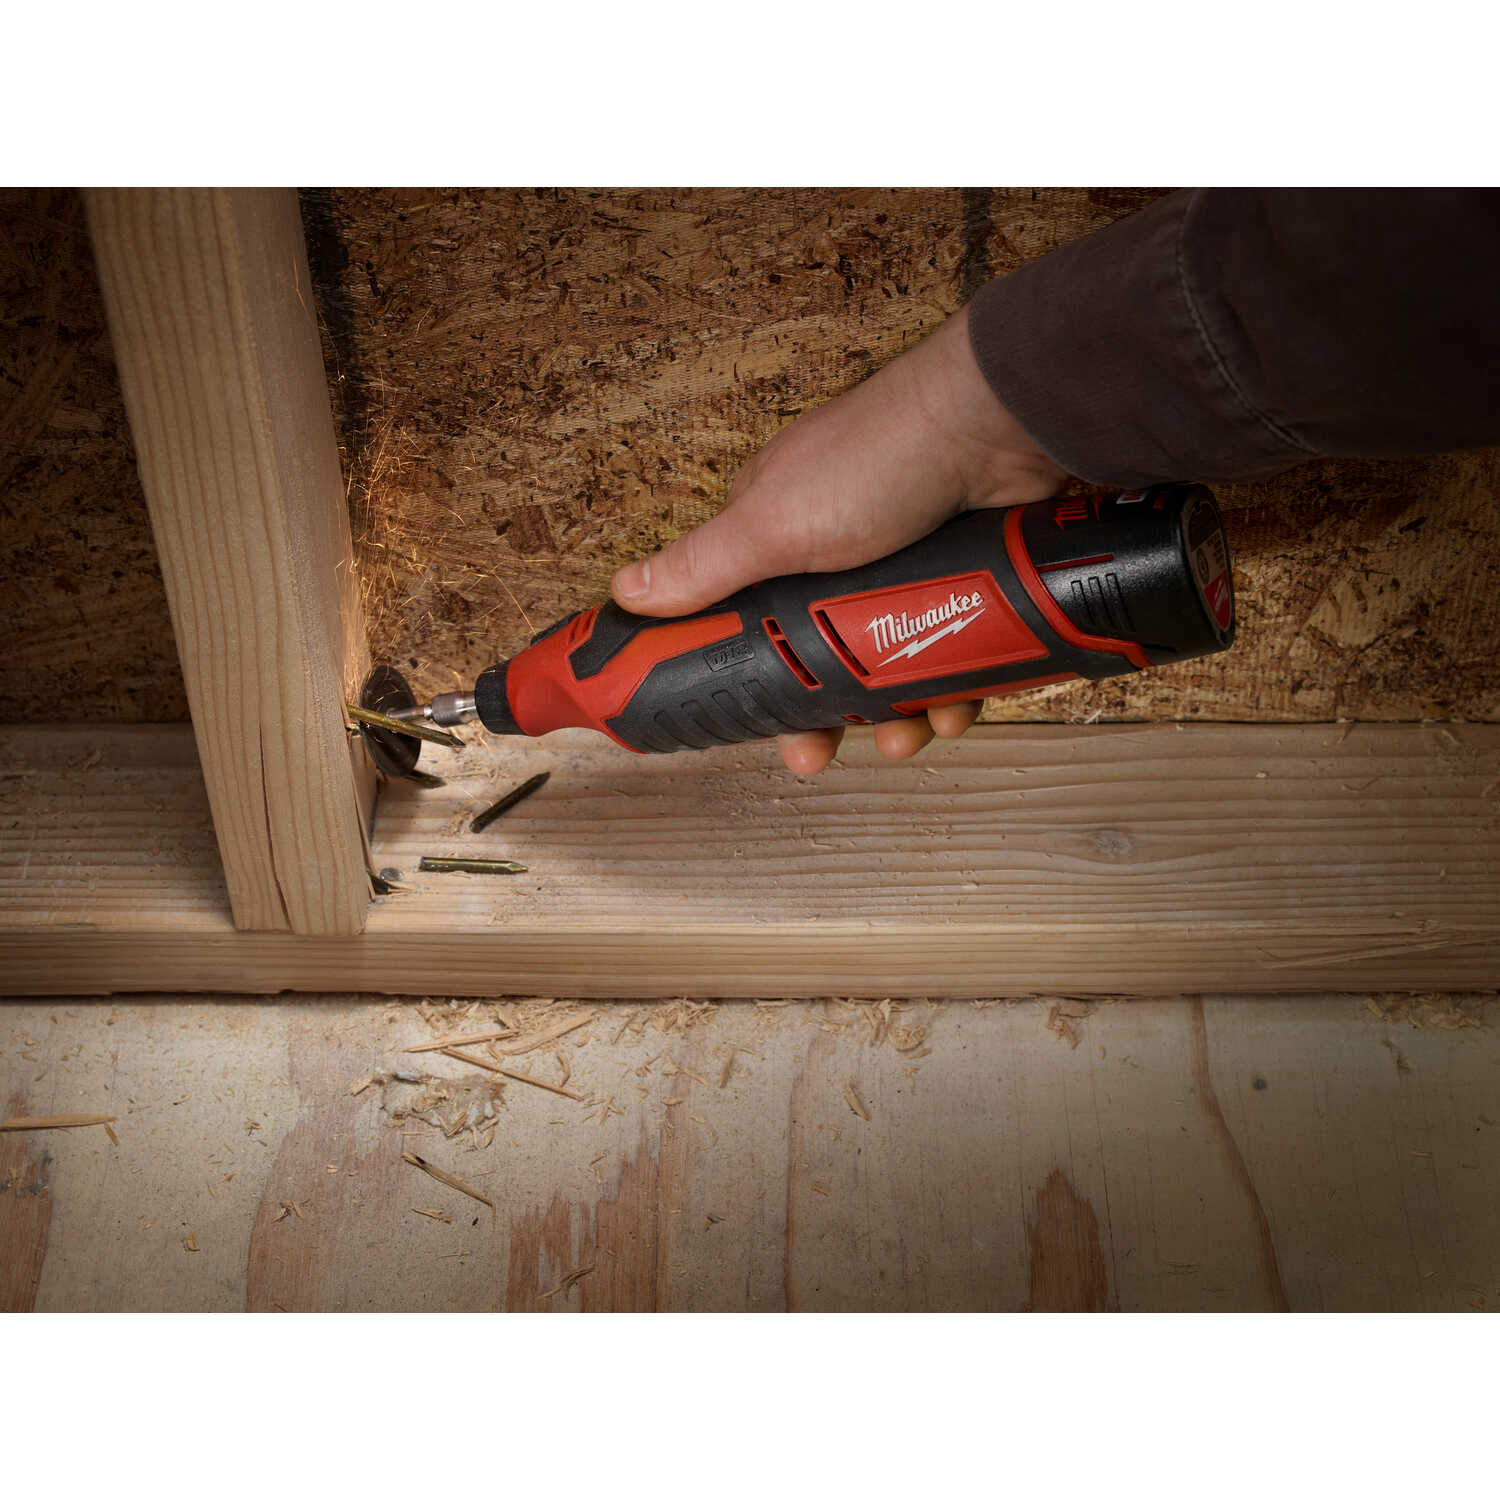 Milwaukee  M12  1/4 and 1/8 in. Cordless  Rotary Tool  Kit 32000 rpm 1 pc.